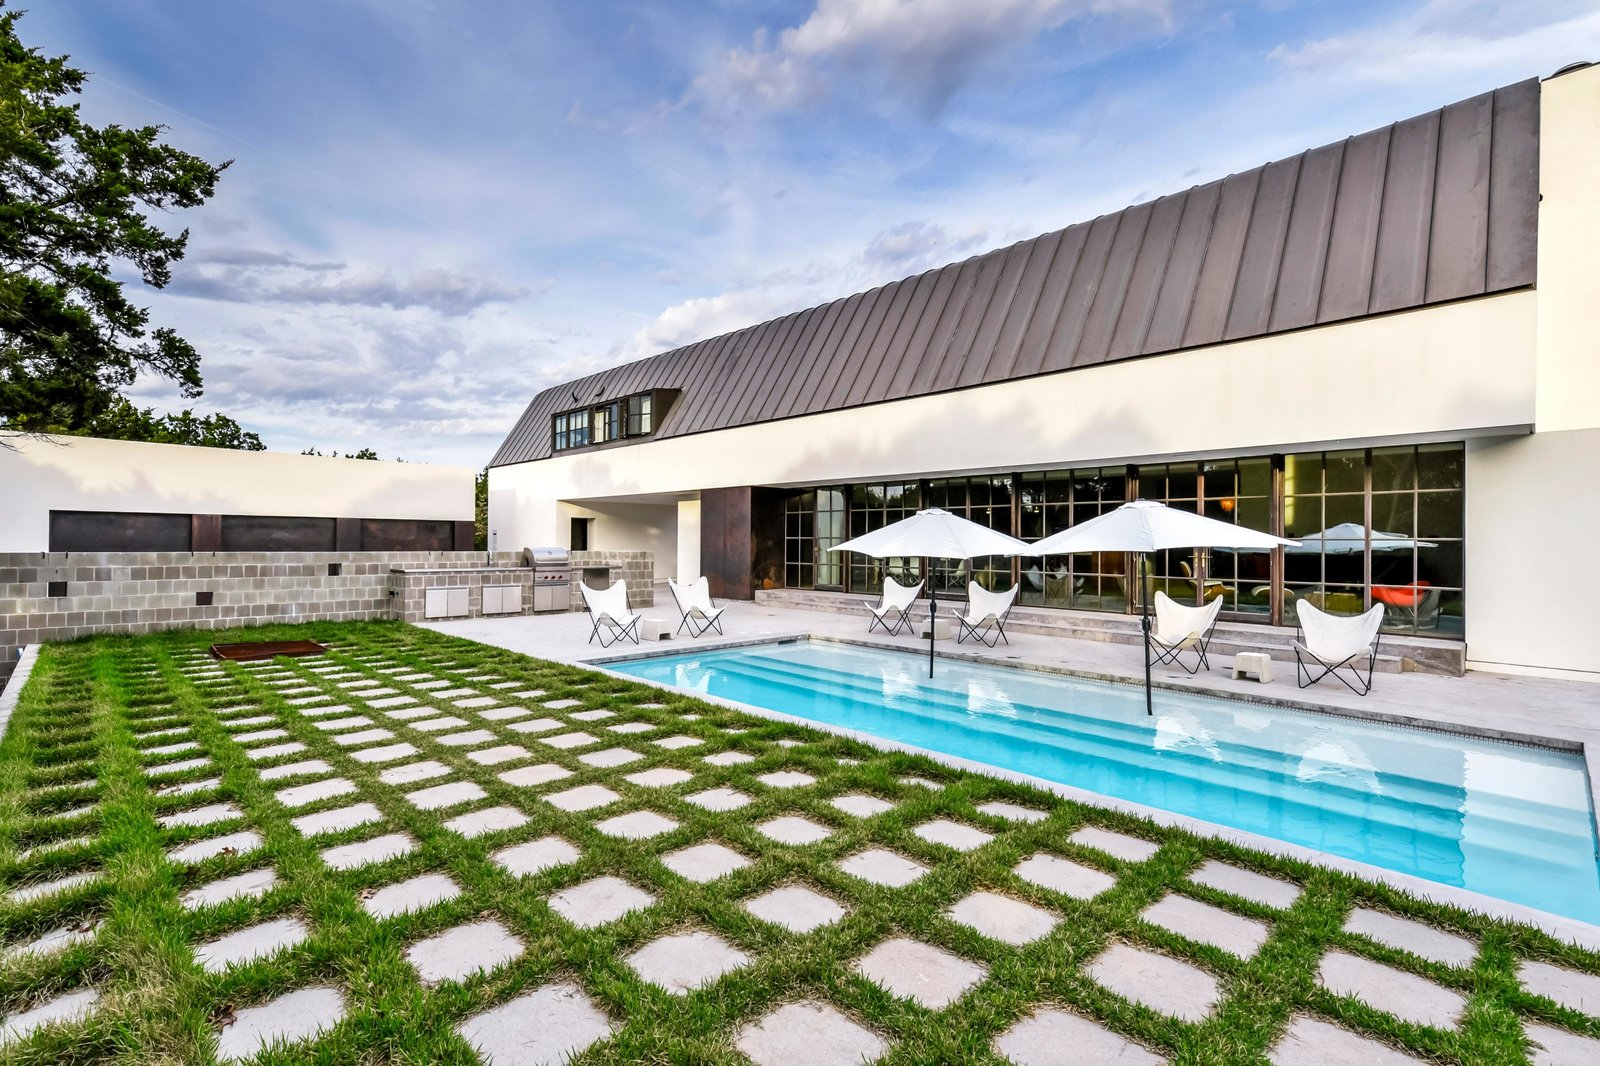 The pool area was designed for outdoor entertaining.